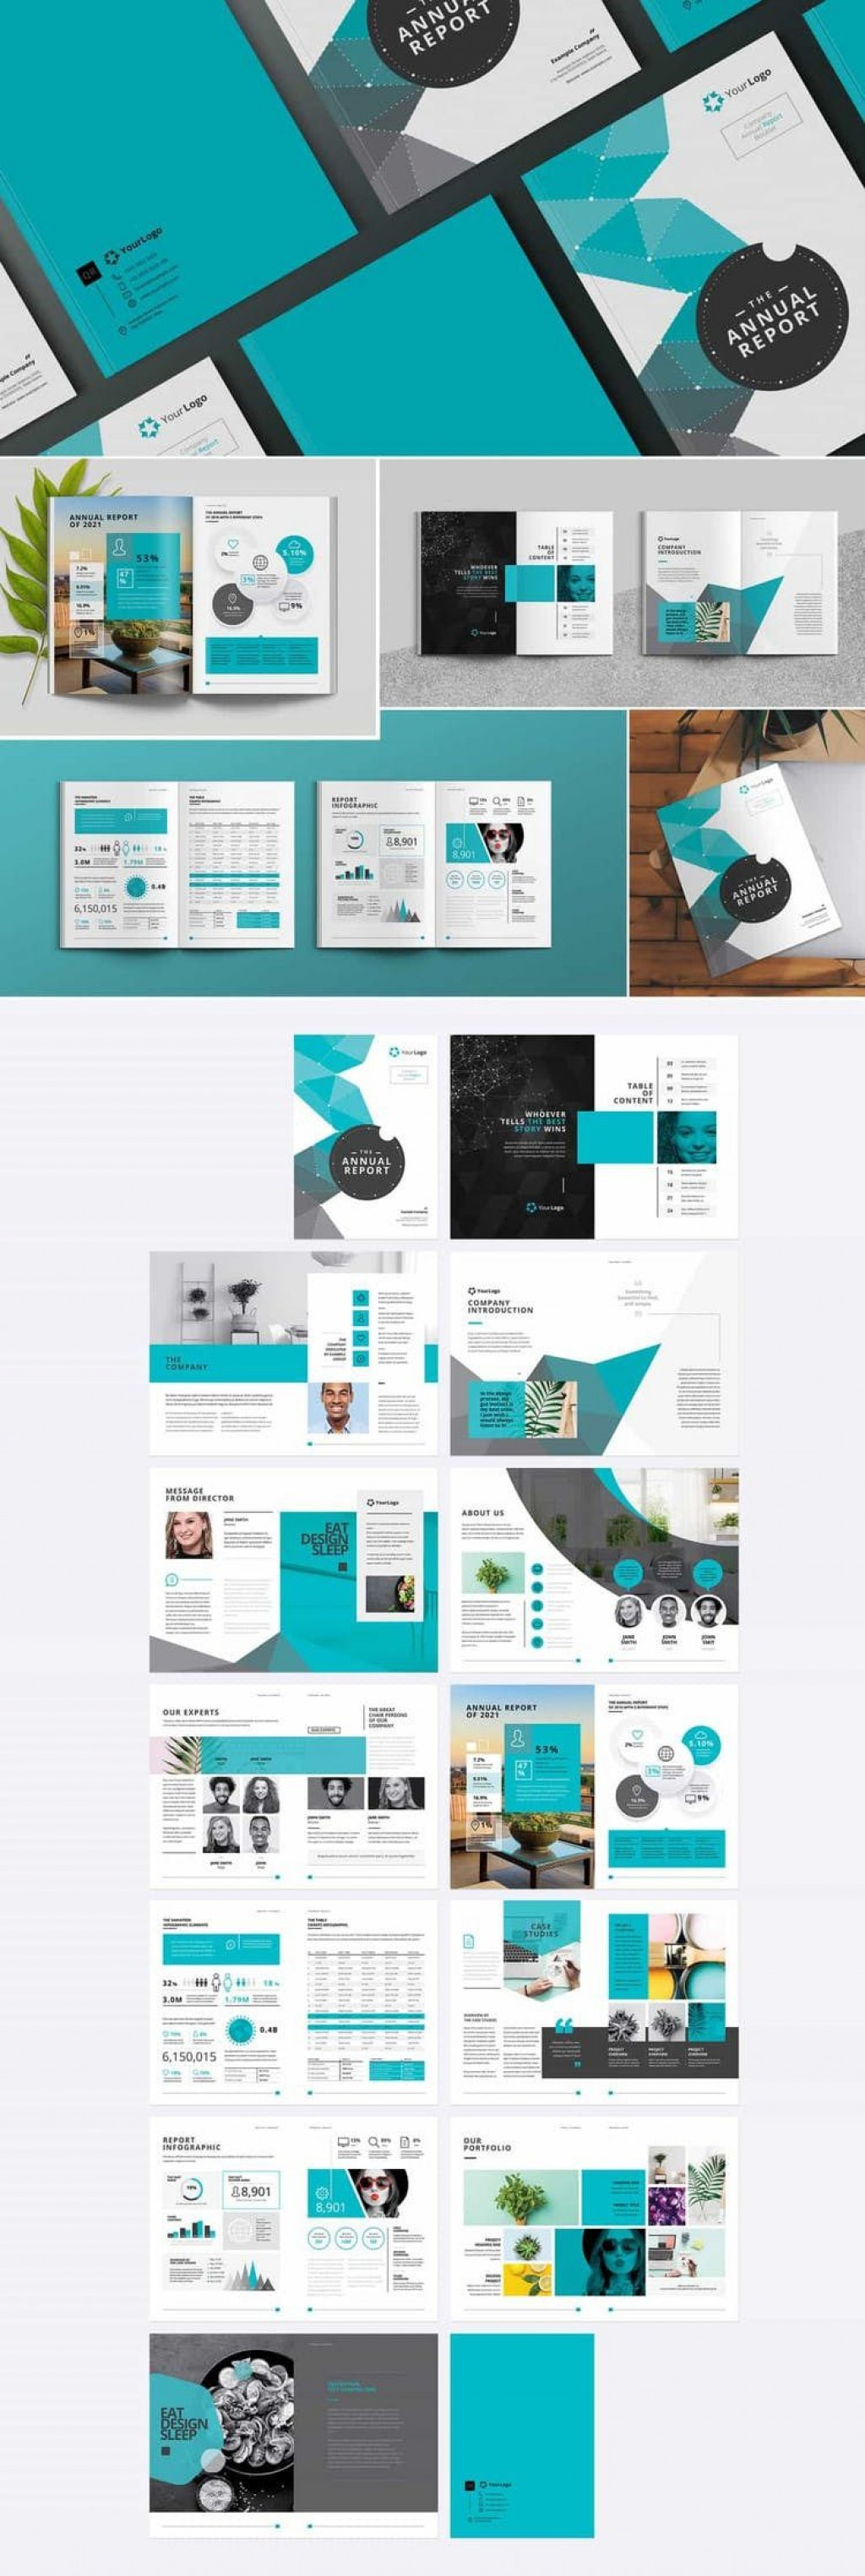 005 Archaicawful Annual Report Design Template Photo  Templates Word Timeles Free Download InLarge